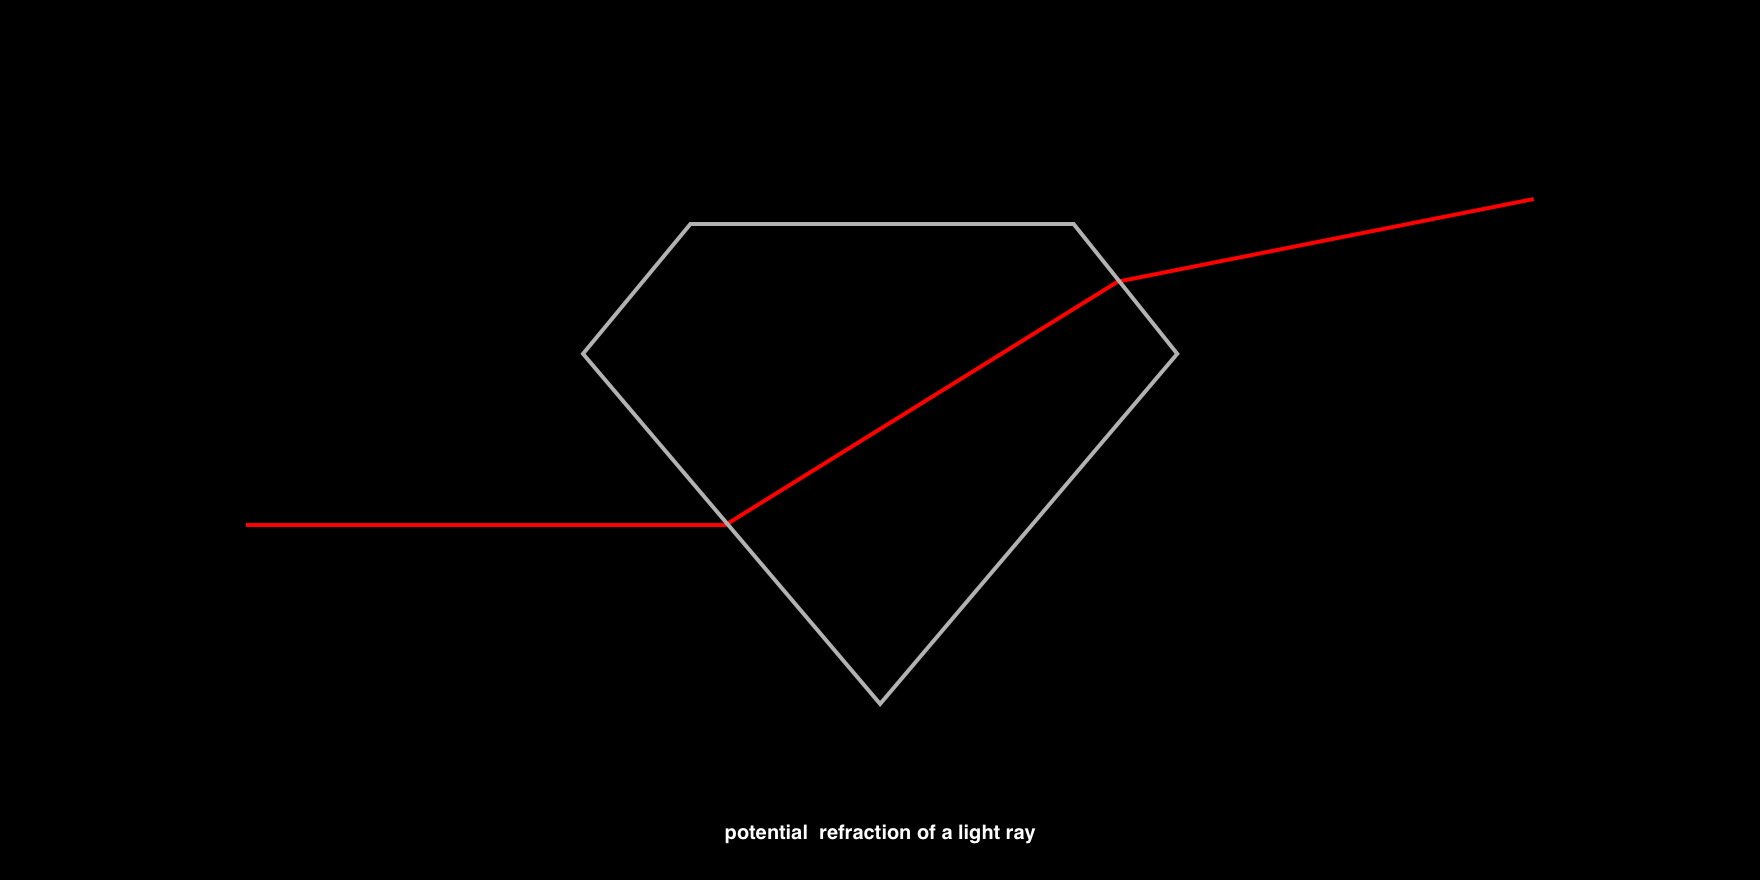 potential refraction of a light ray